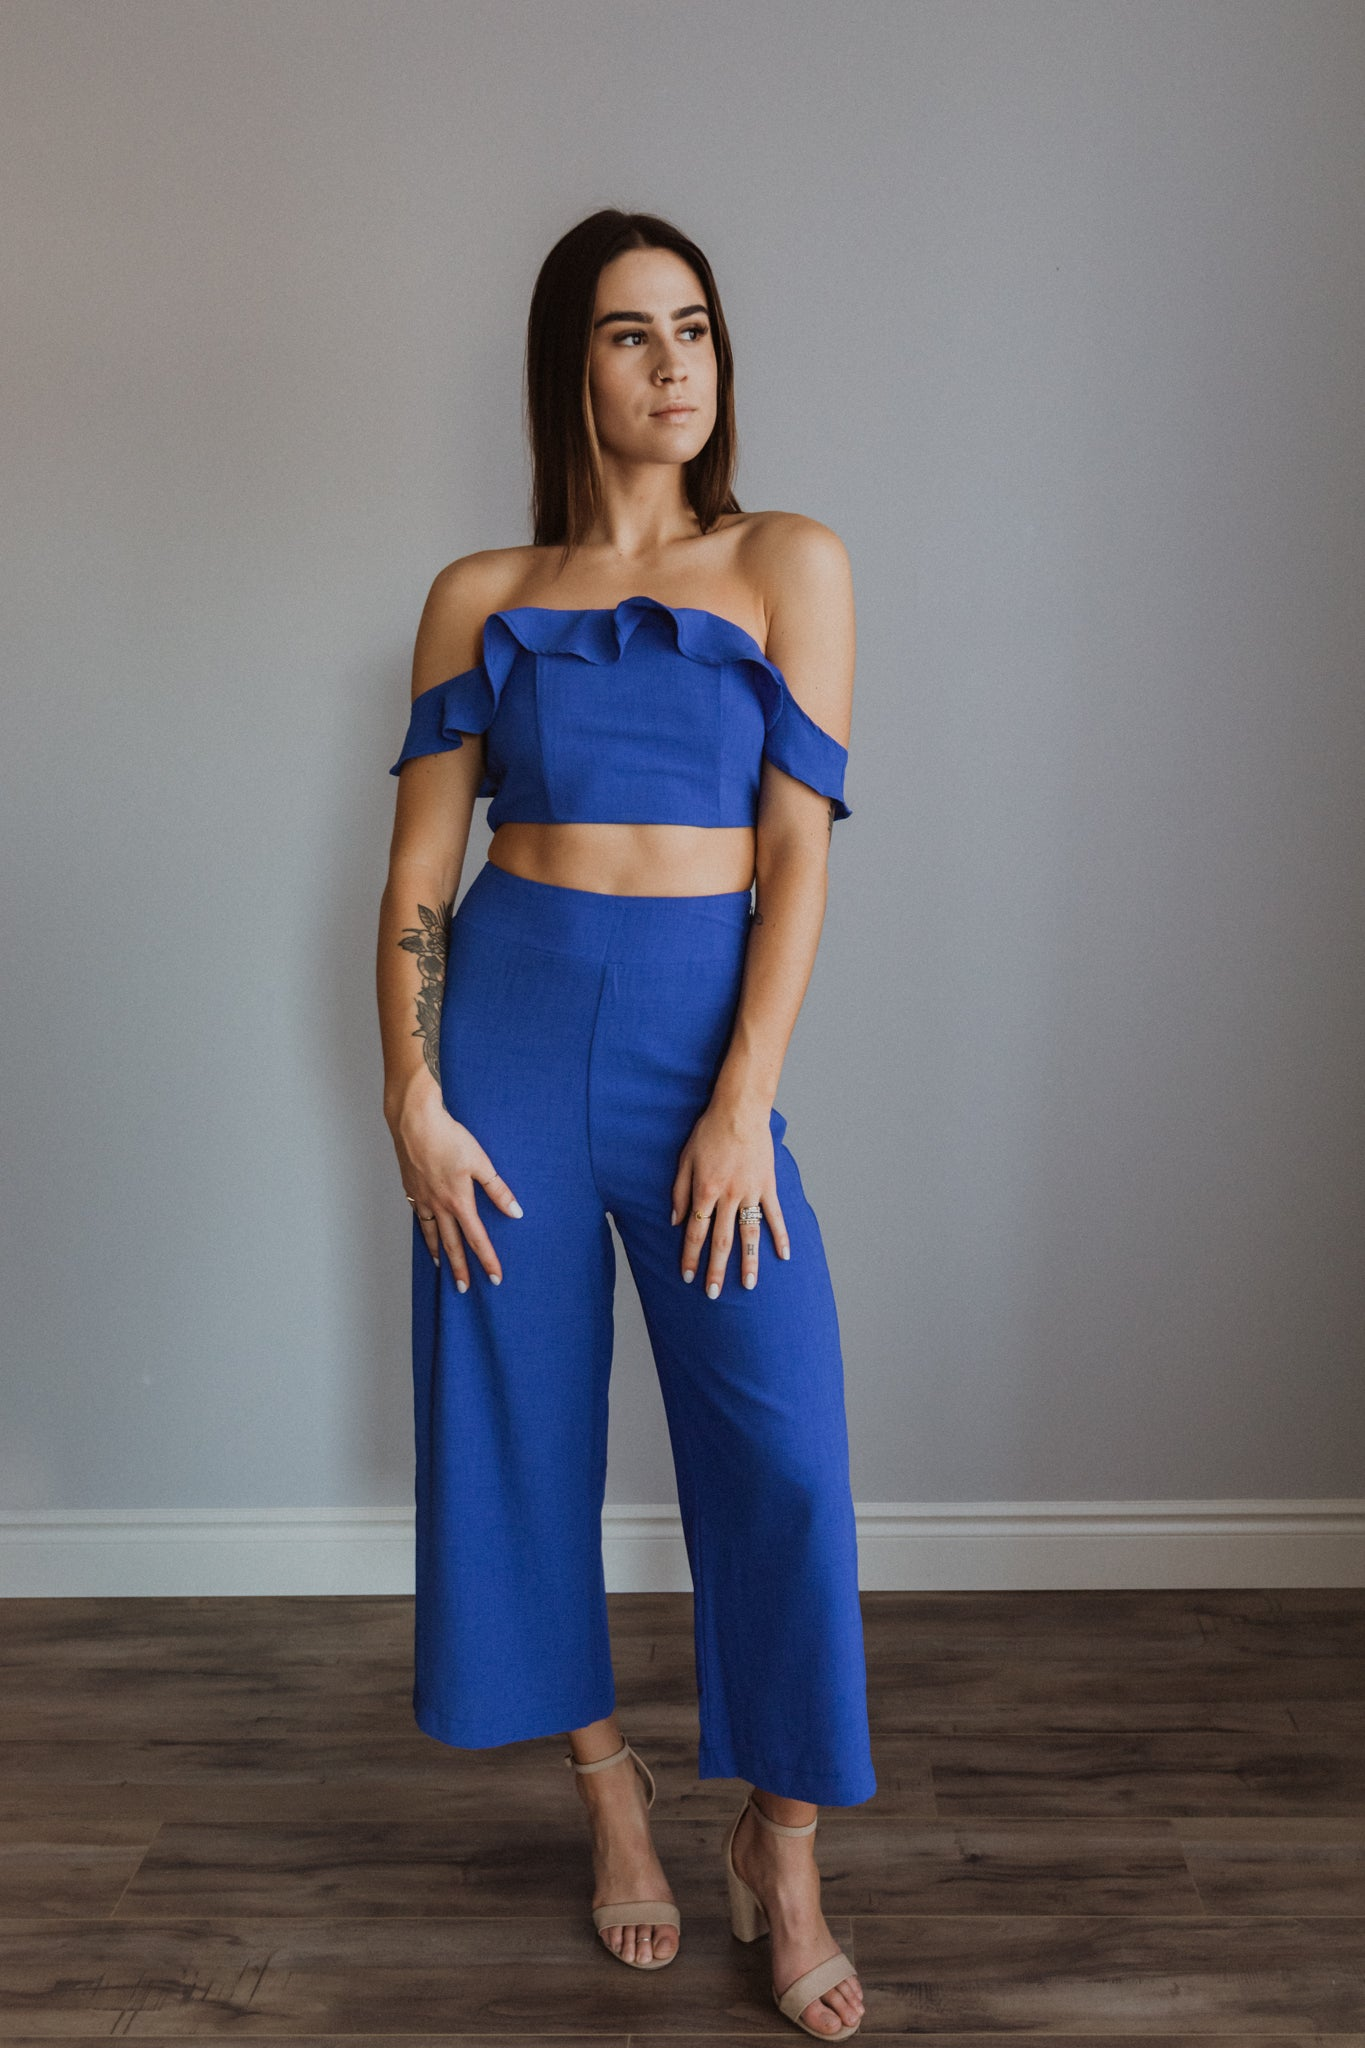 Those Ocean Eyes Crop Top and Pants Set